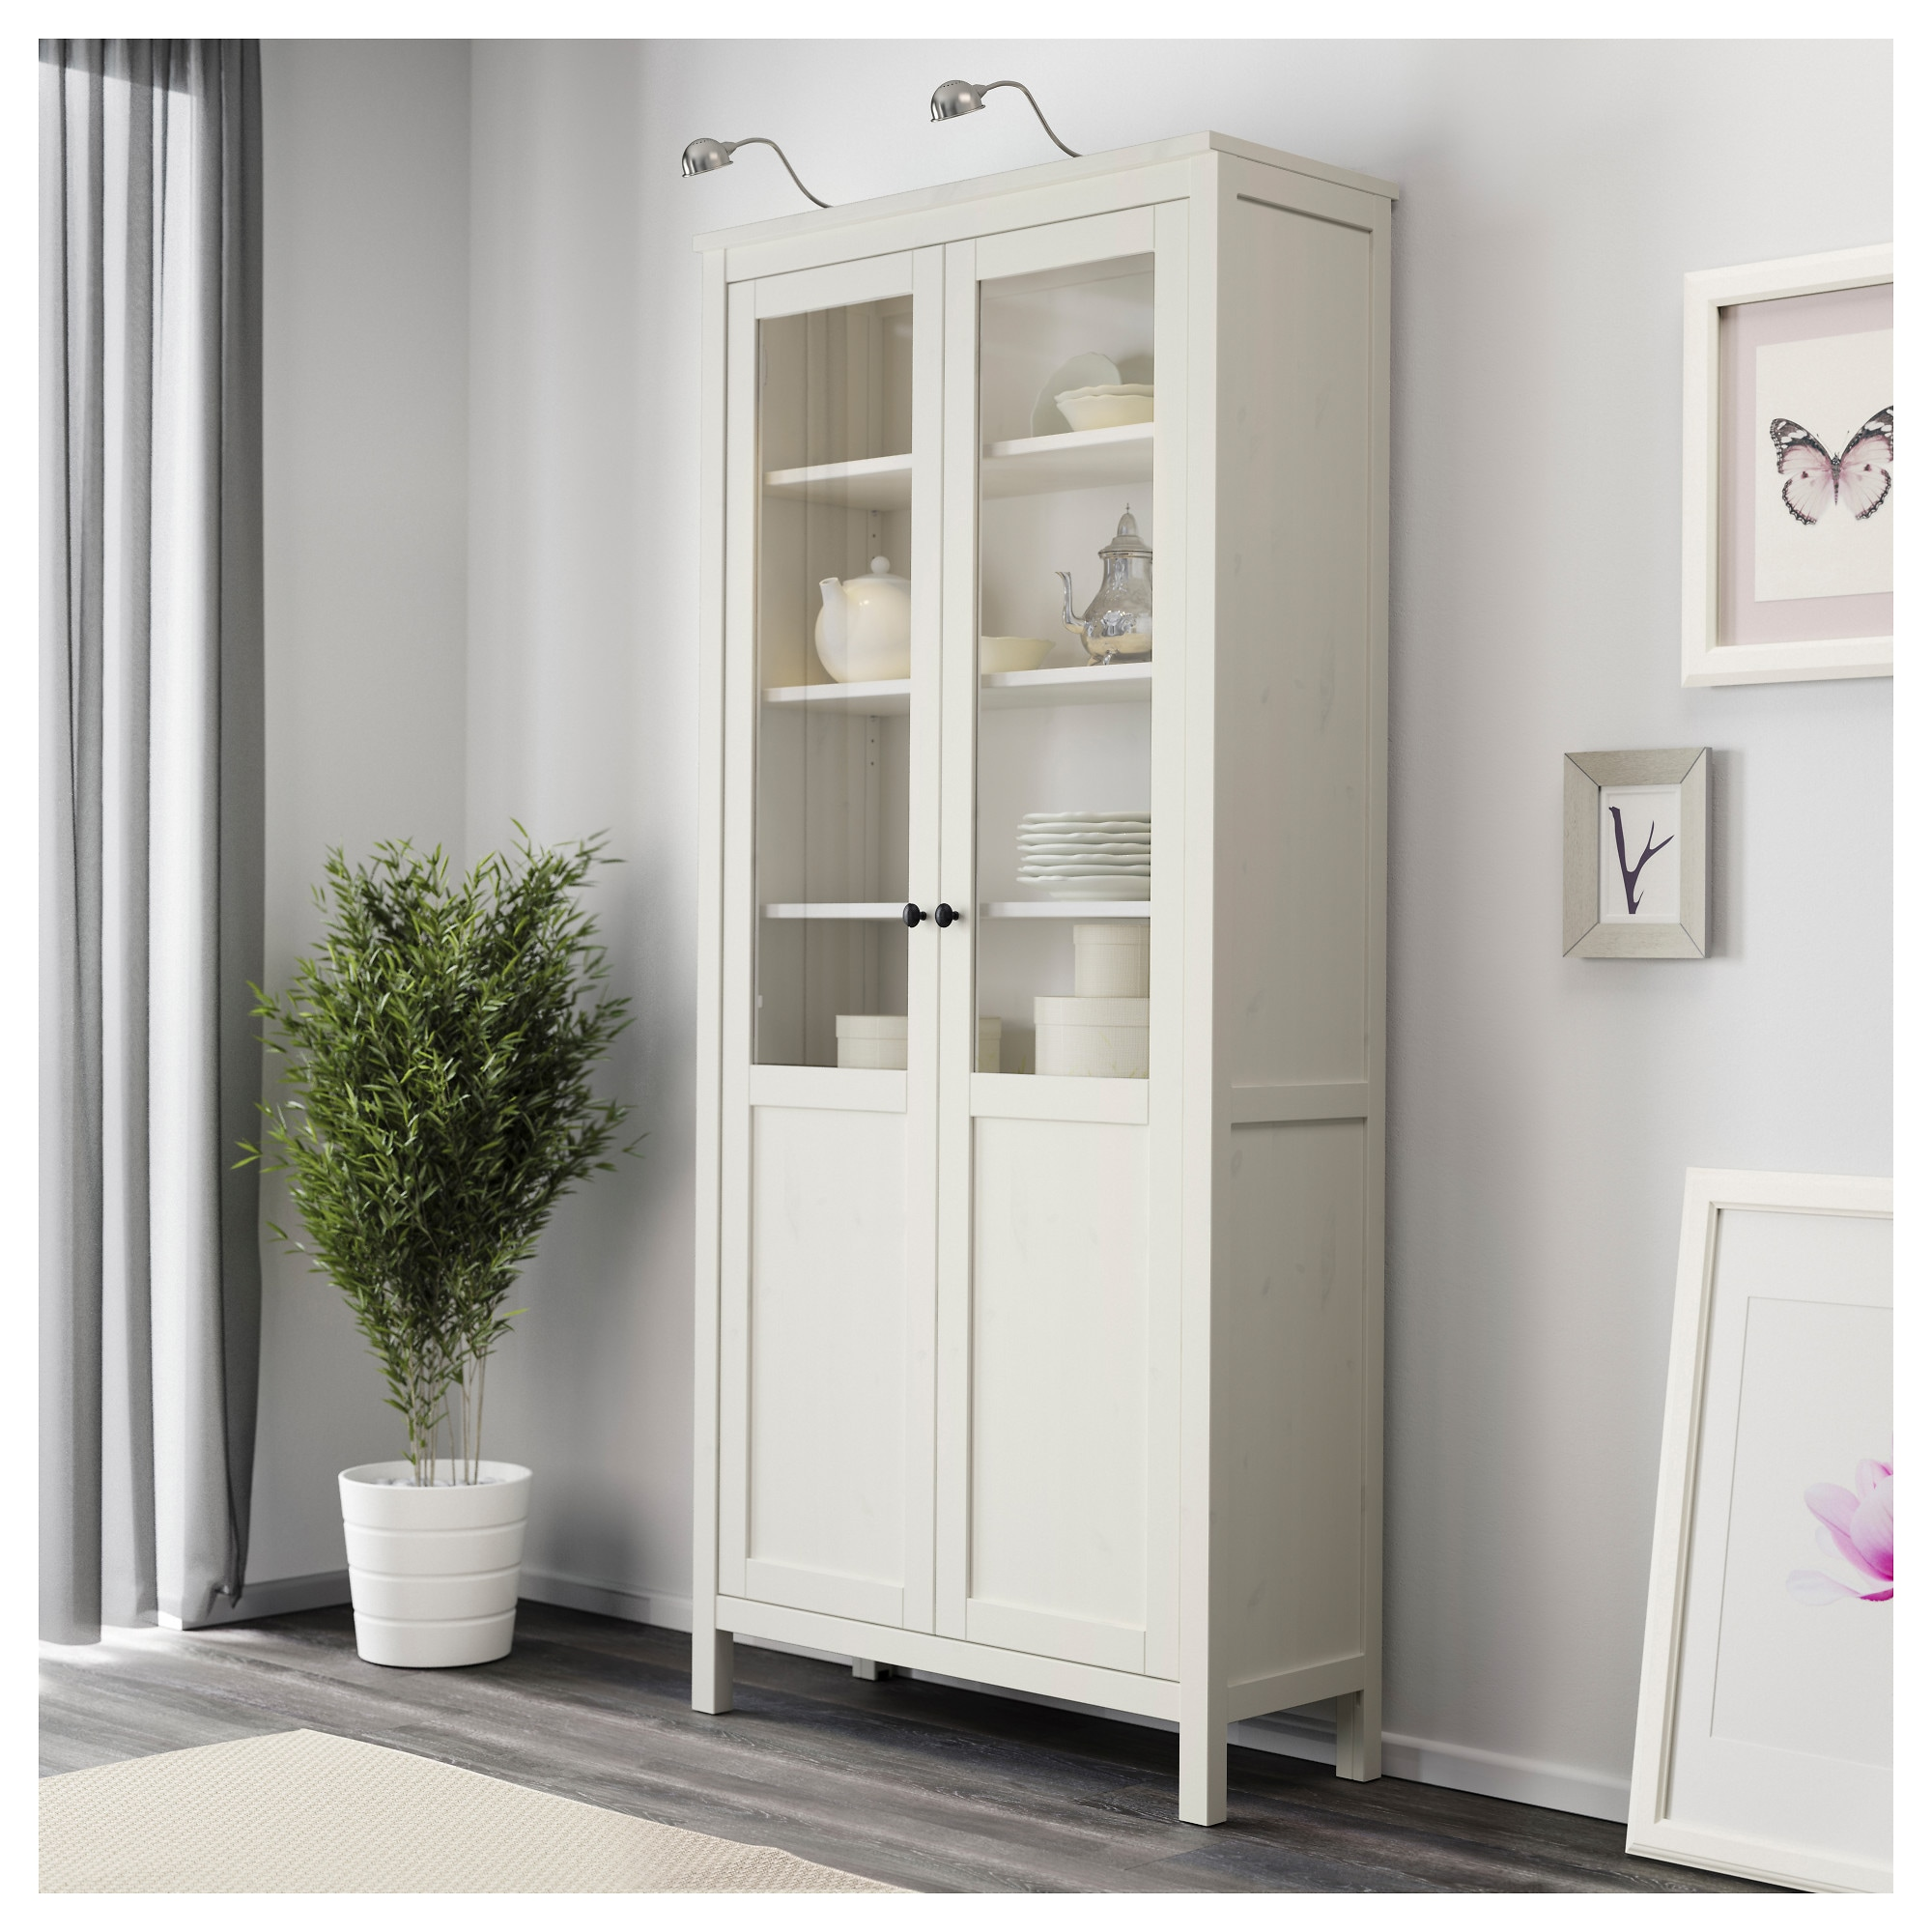 Hemnes Cabinet With Panelglass Door White Stain Ikea